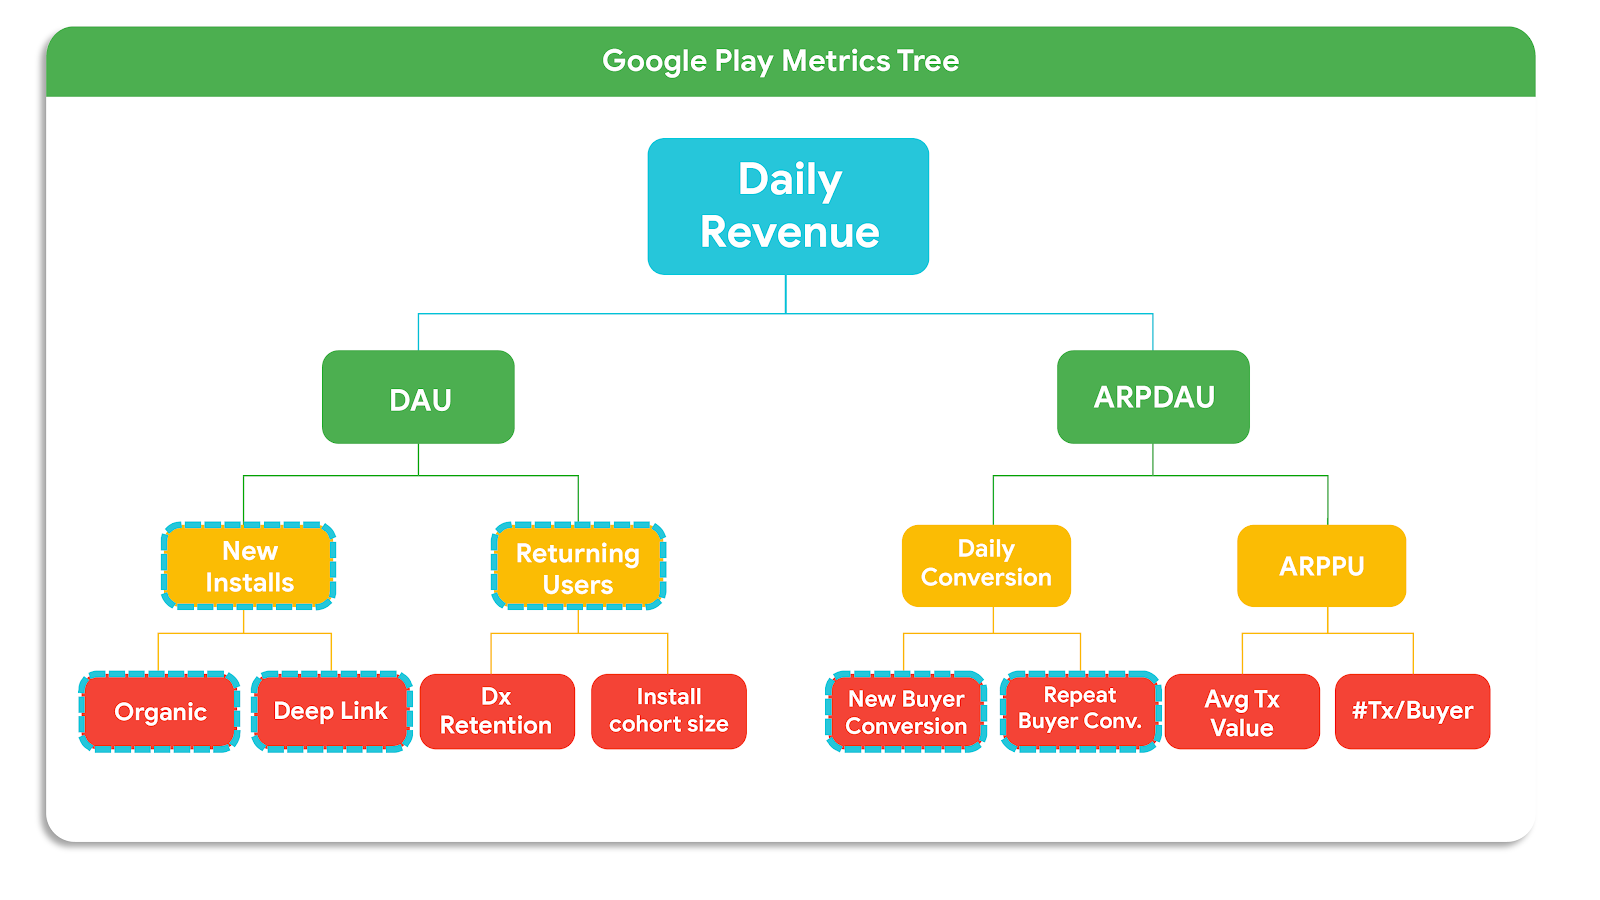 KPI Metrics Tree for Google Play Apps and Games